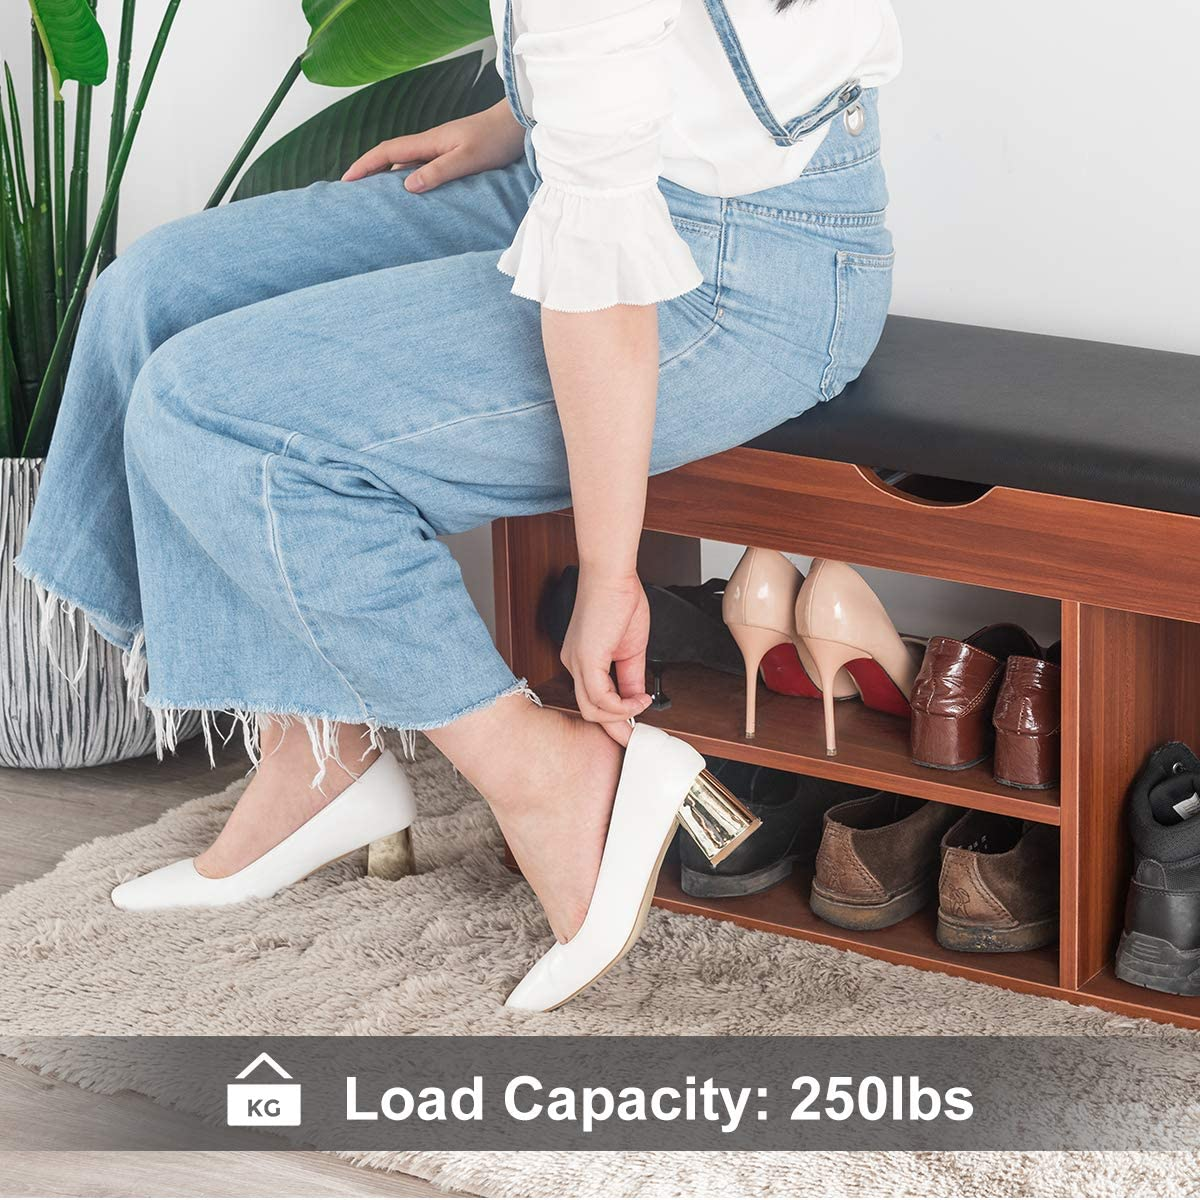 Mr IRONSTONE Shoes Bench Boot Organizing Upholstered Shoe Rack Entryway Storage, 2-Tier & 1- Hidden Compartment: Kitchen & Dining